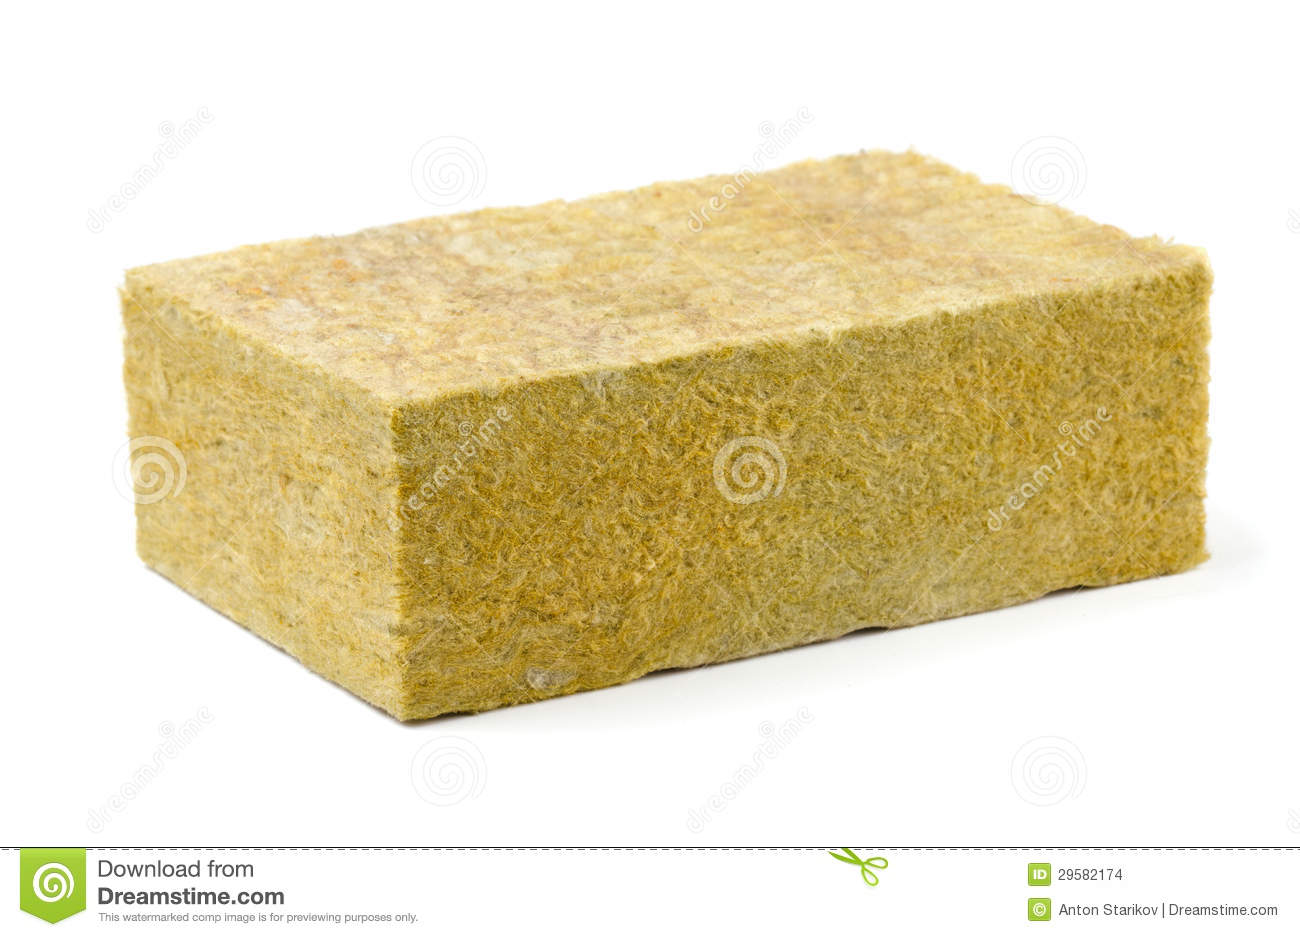 Fiberglass Insulation Stock Photo Image Of Improvement